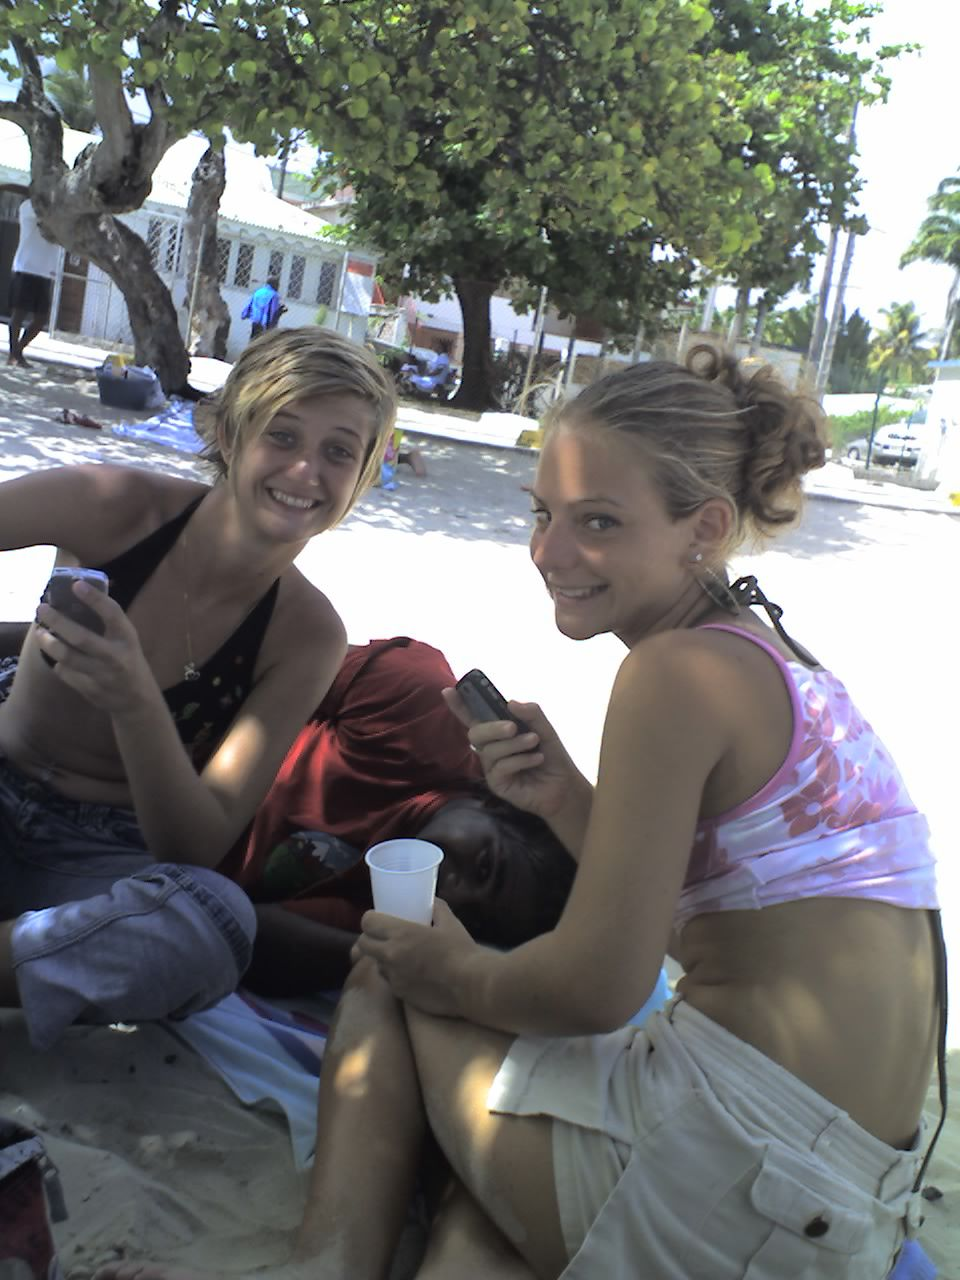 Vacances 2007 - Plage du bourg - Lisa - Teddy - Justine